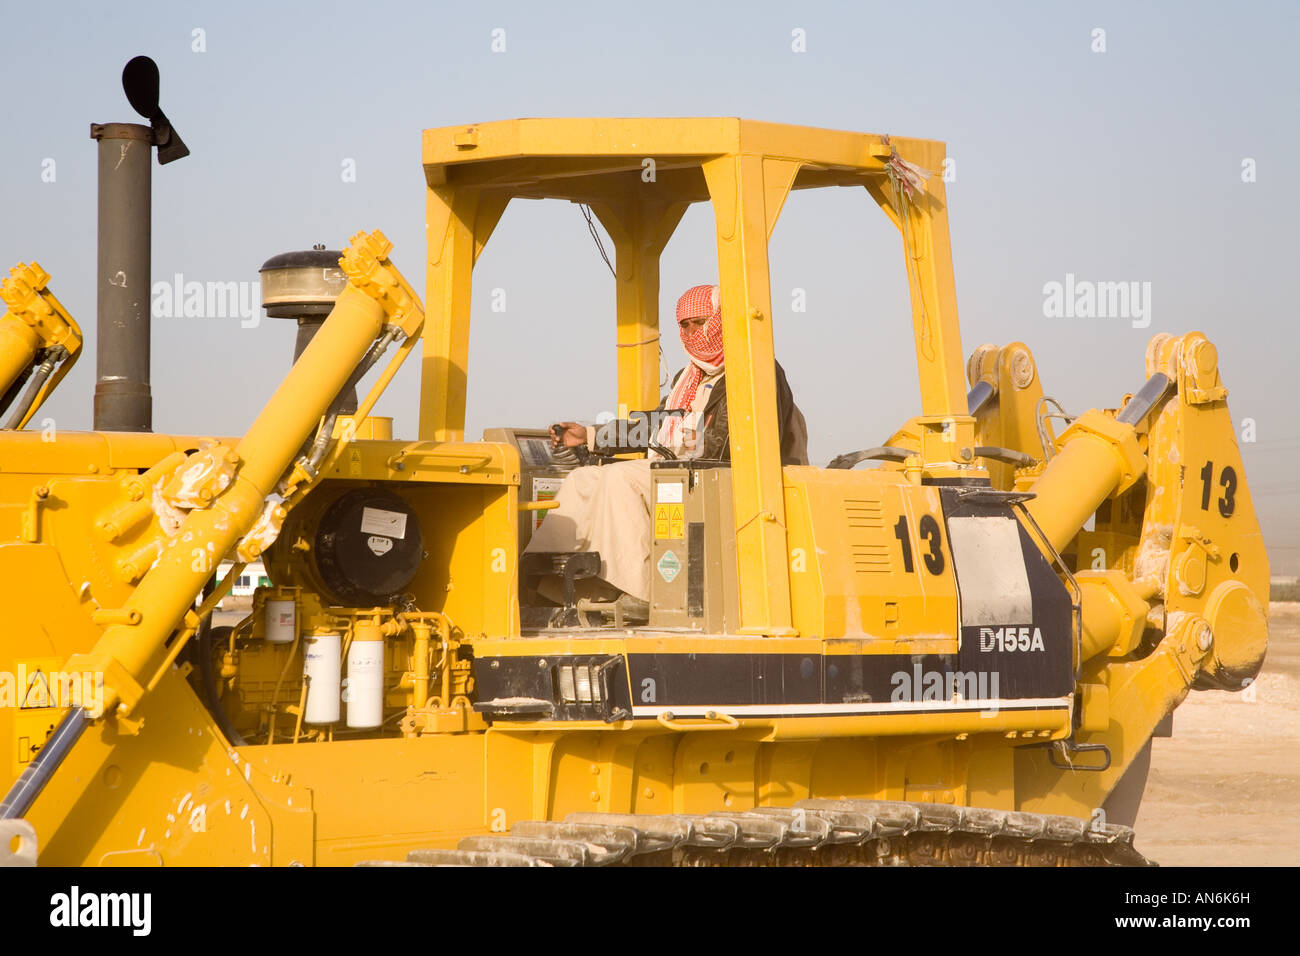 Palestinian headdress protected worker driving a bulldozer on a dusty construction site - Stock Image